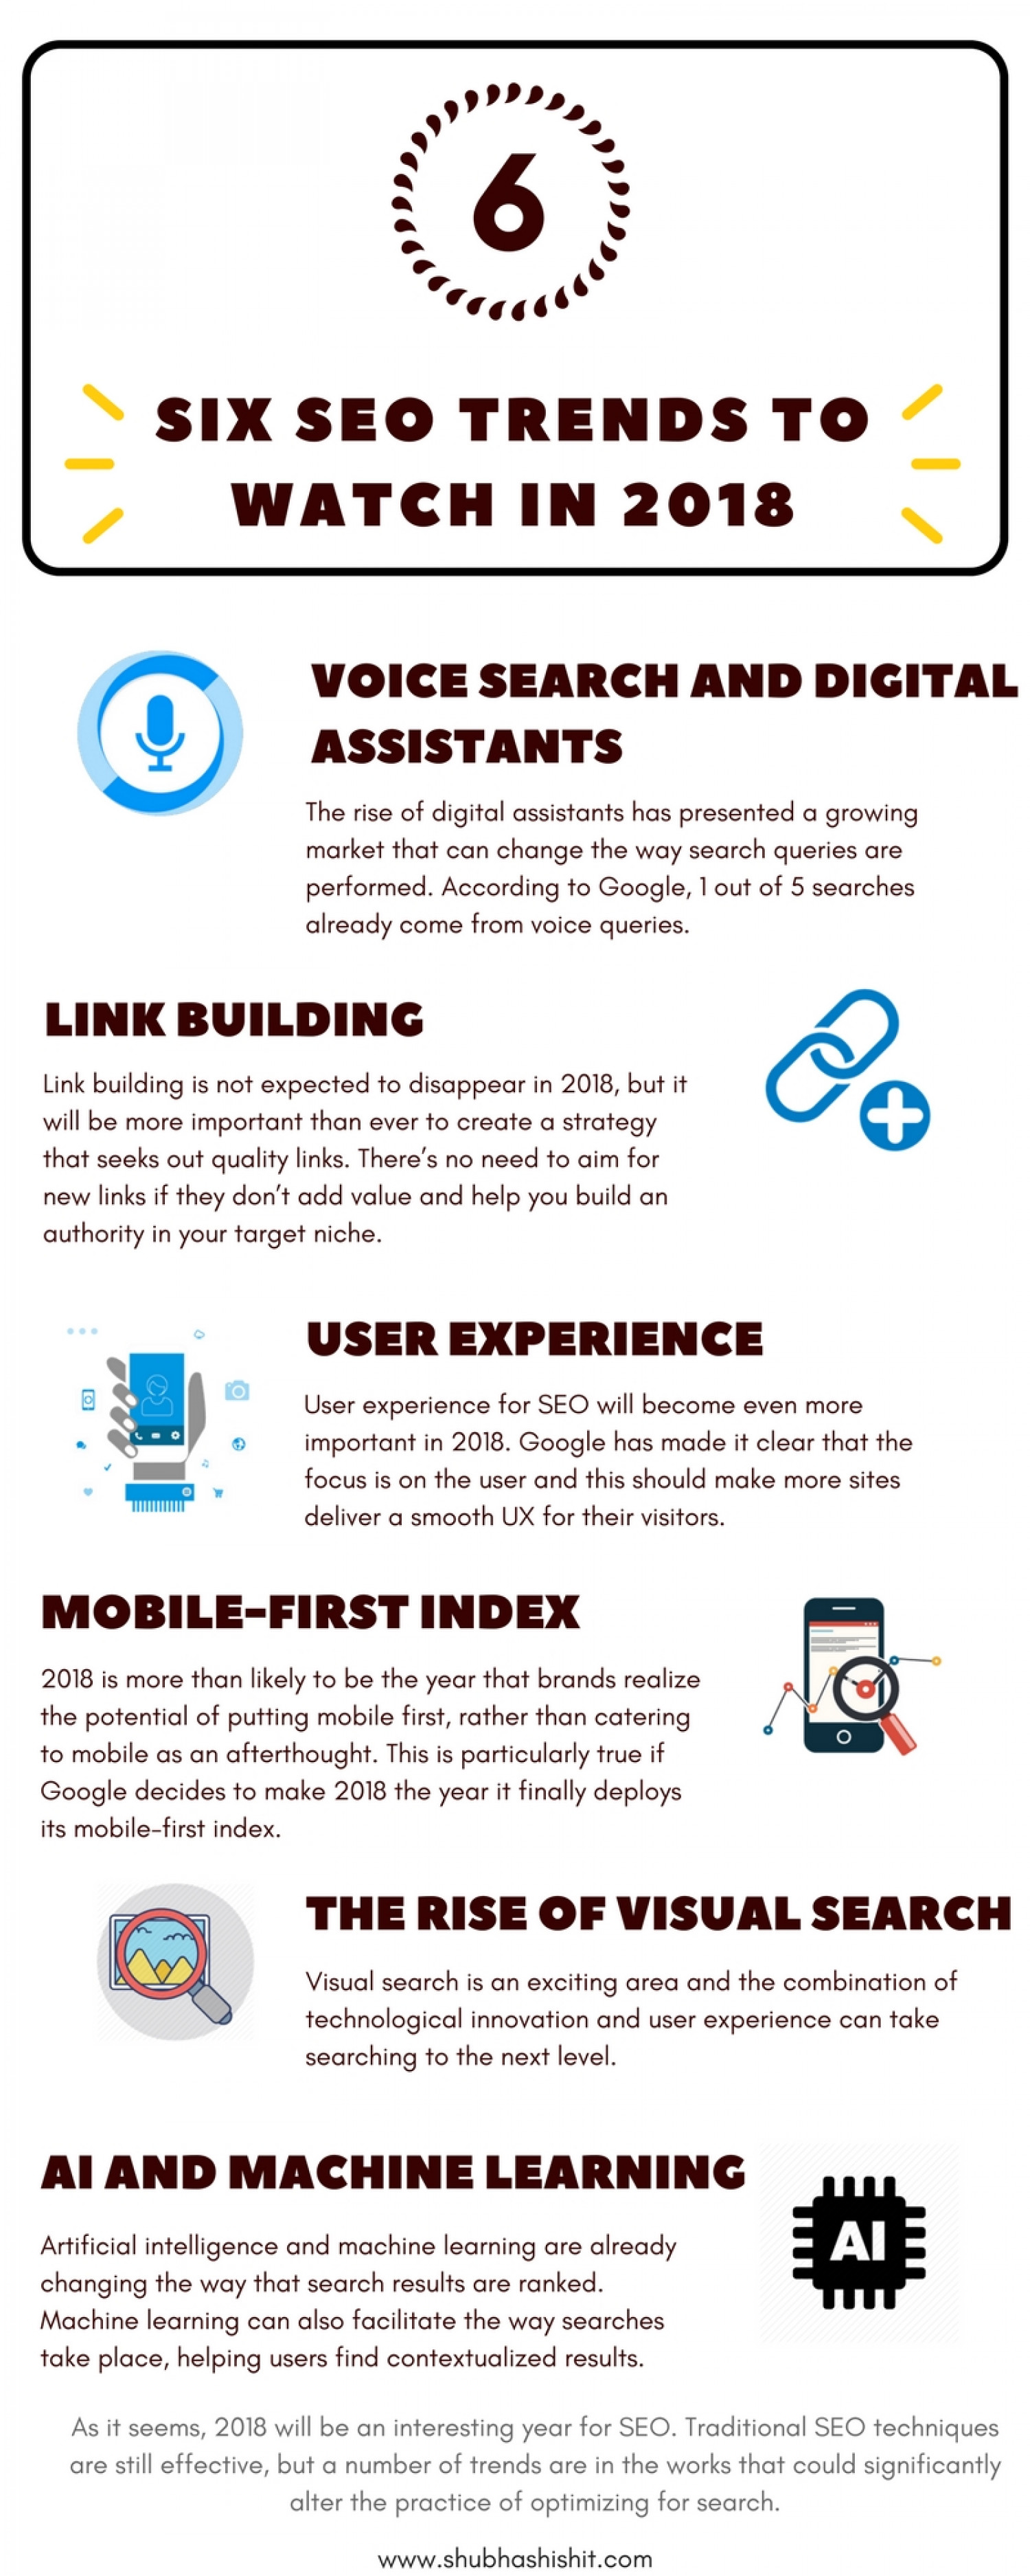 6 SEO Trends To Watch in 2018 Infographic